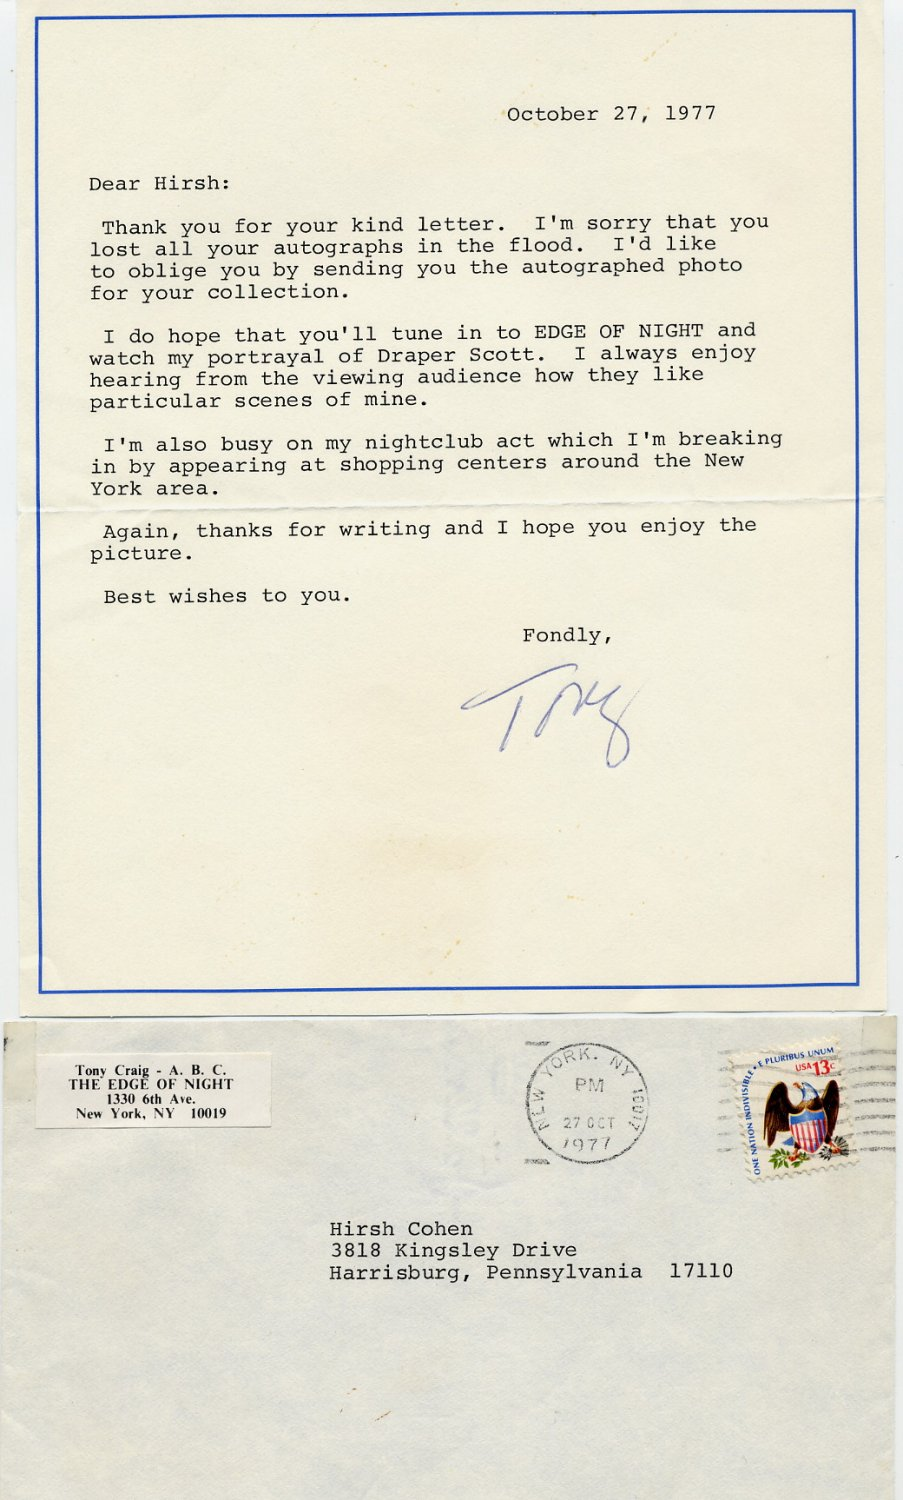 ABC The Edge of Night Actor Draper Scott TONY CRAIG Typed Letter Signed 1977